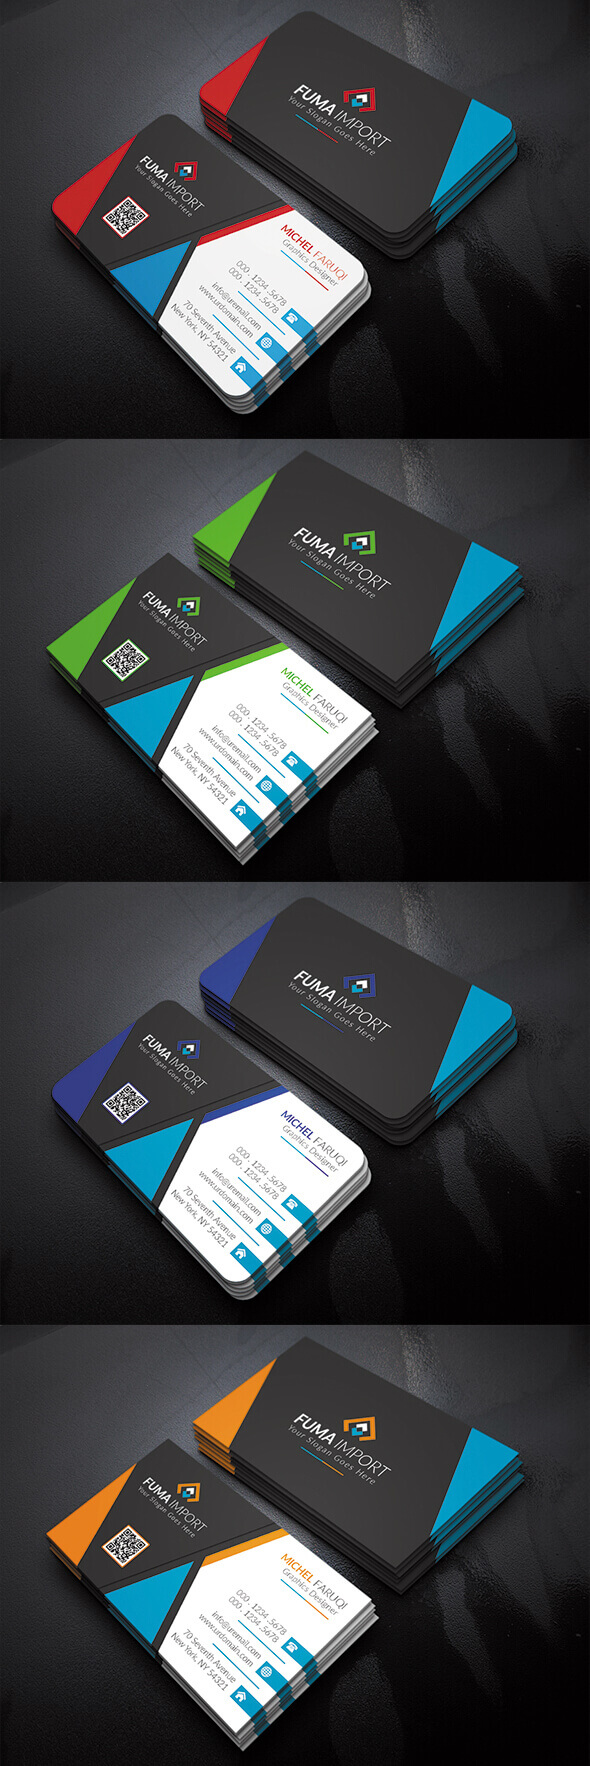 Business Card Vol-4 by codegrape